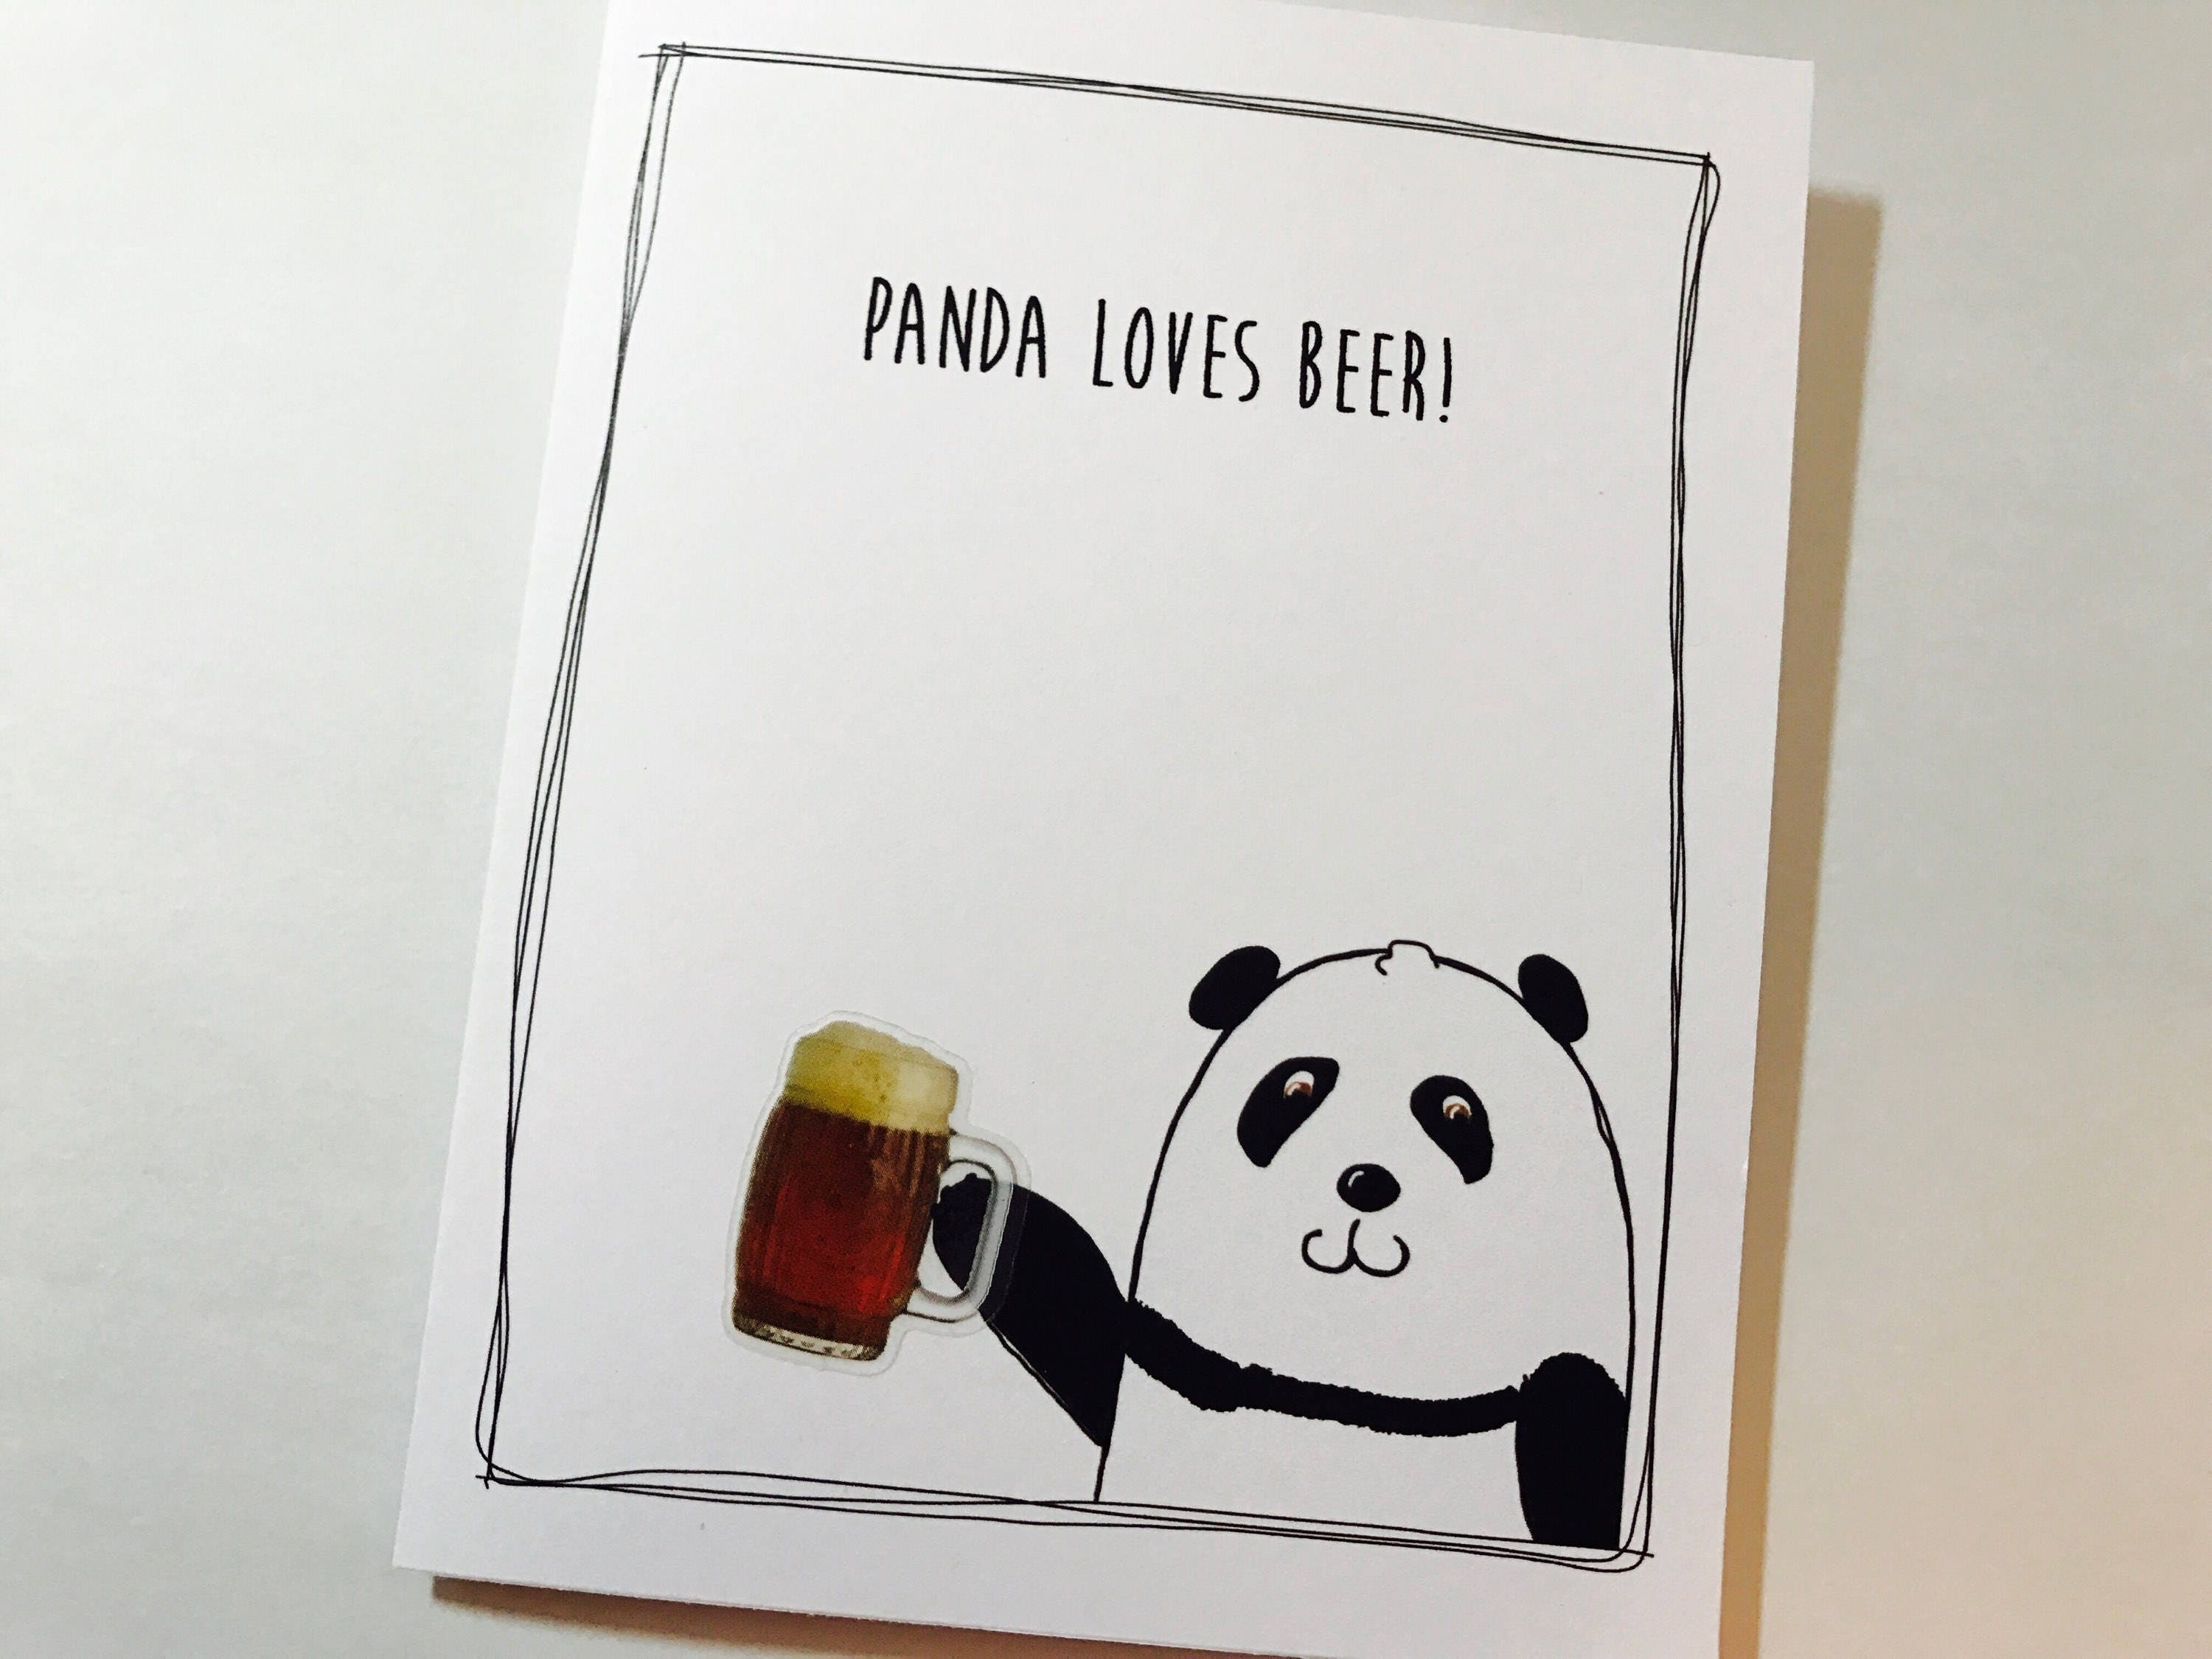 Panda birthday card beer birthday card panda loves beer you love panda birthday card beer birthday card panda loves beer you love beer inappropriate made on recycled paper comes with envelope and seal bookmarktalkfo Image collections